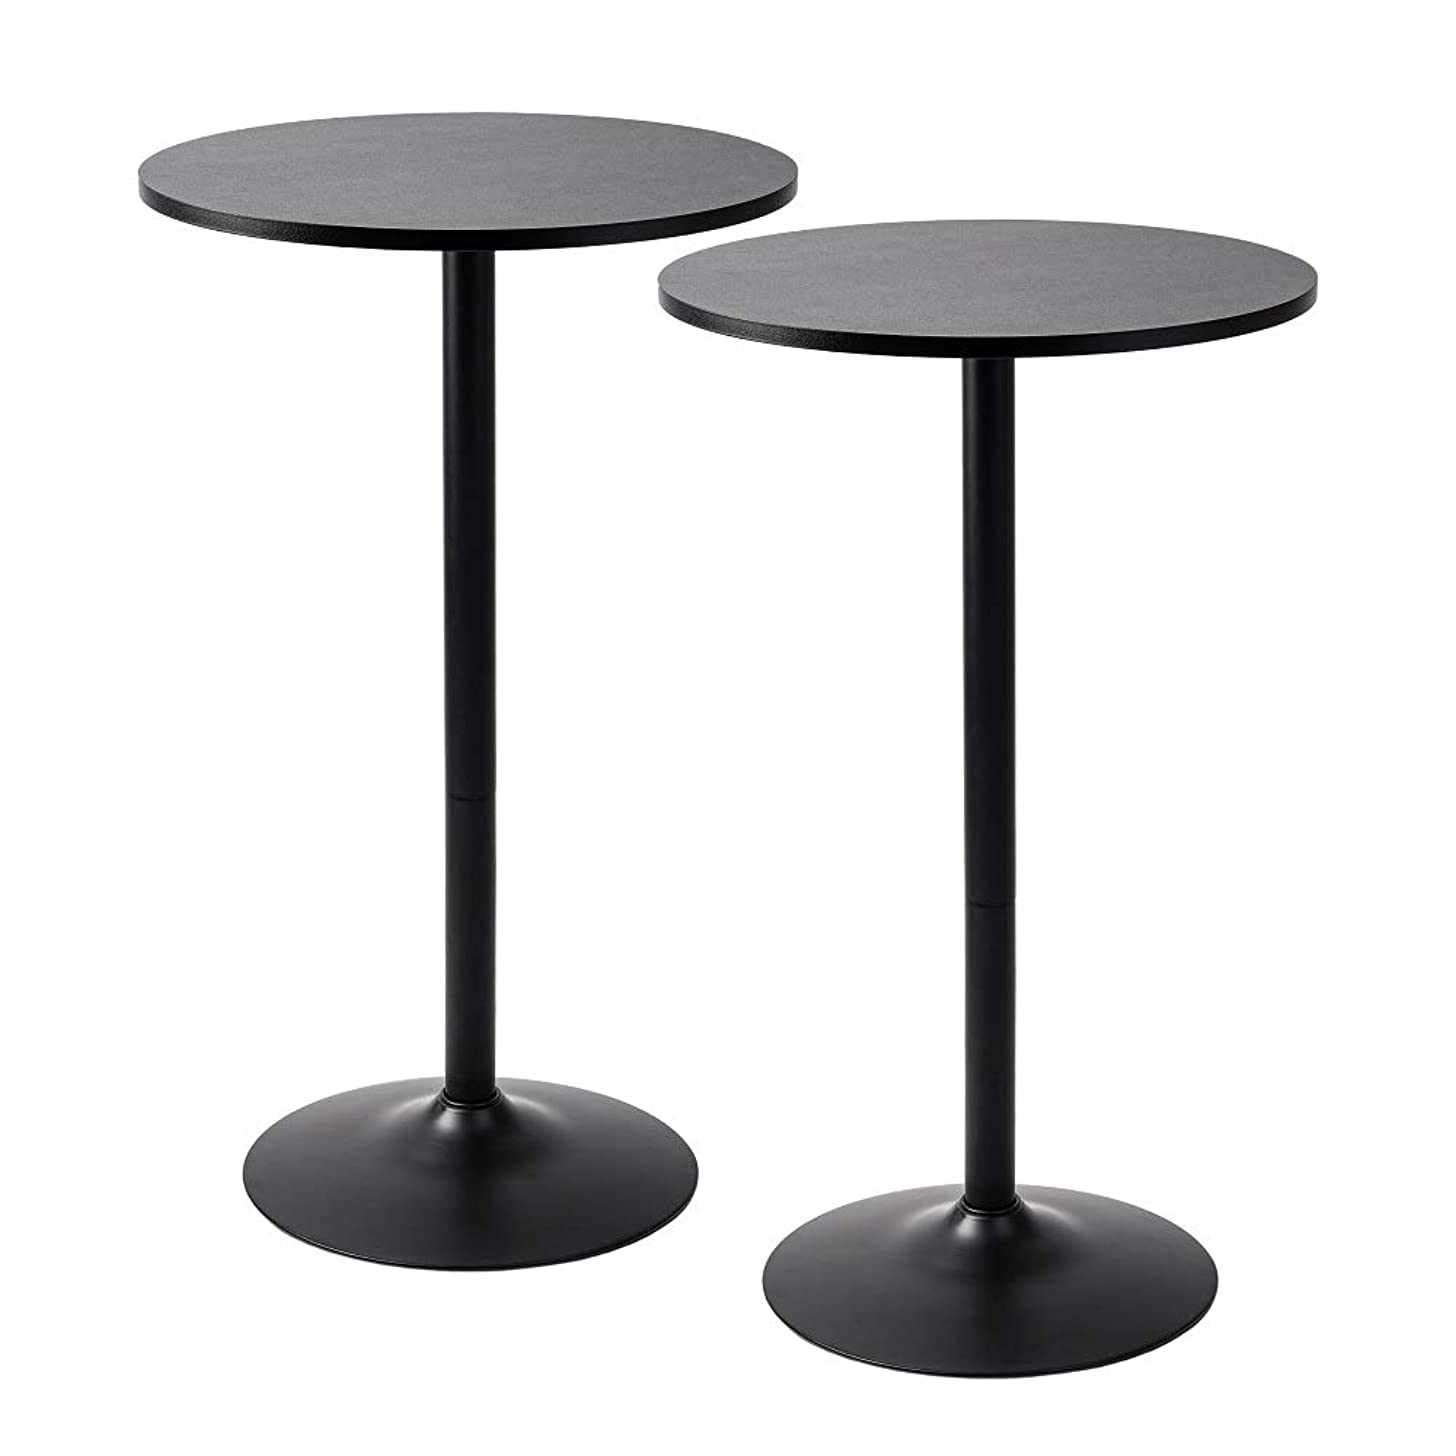 Pearington PEAR-0098 Santina 2 Pack Round Bar and Pub Table, Black